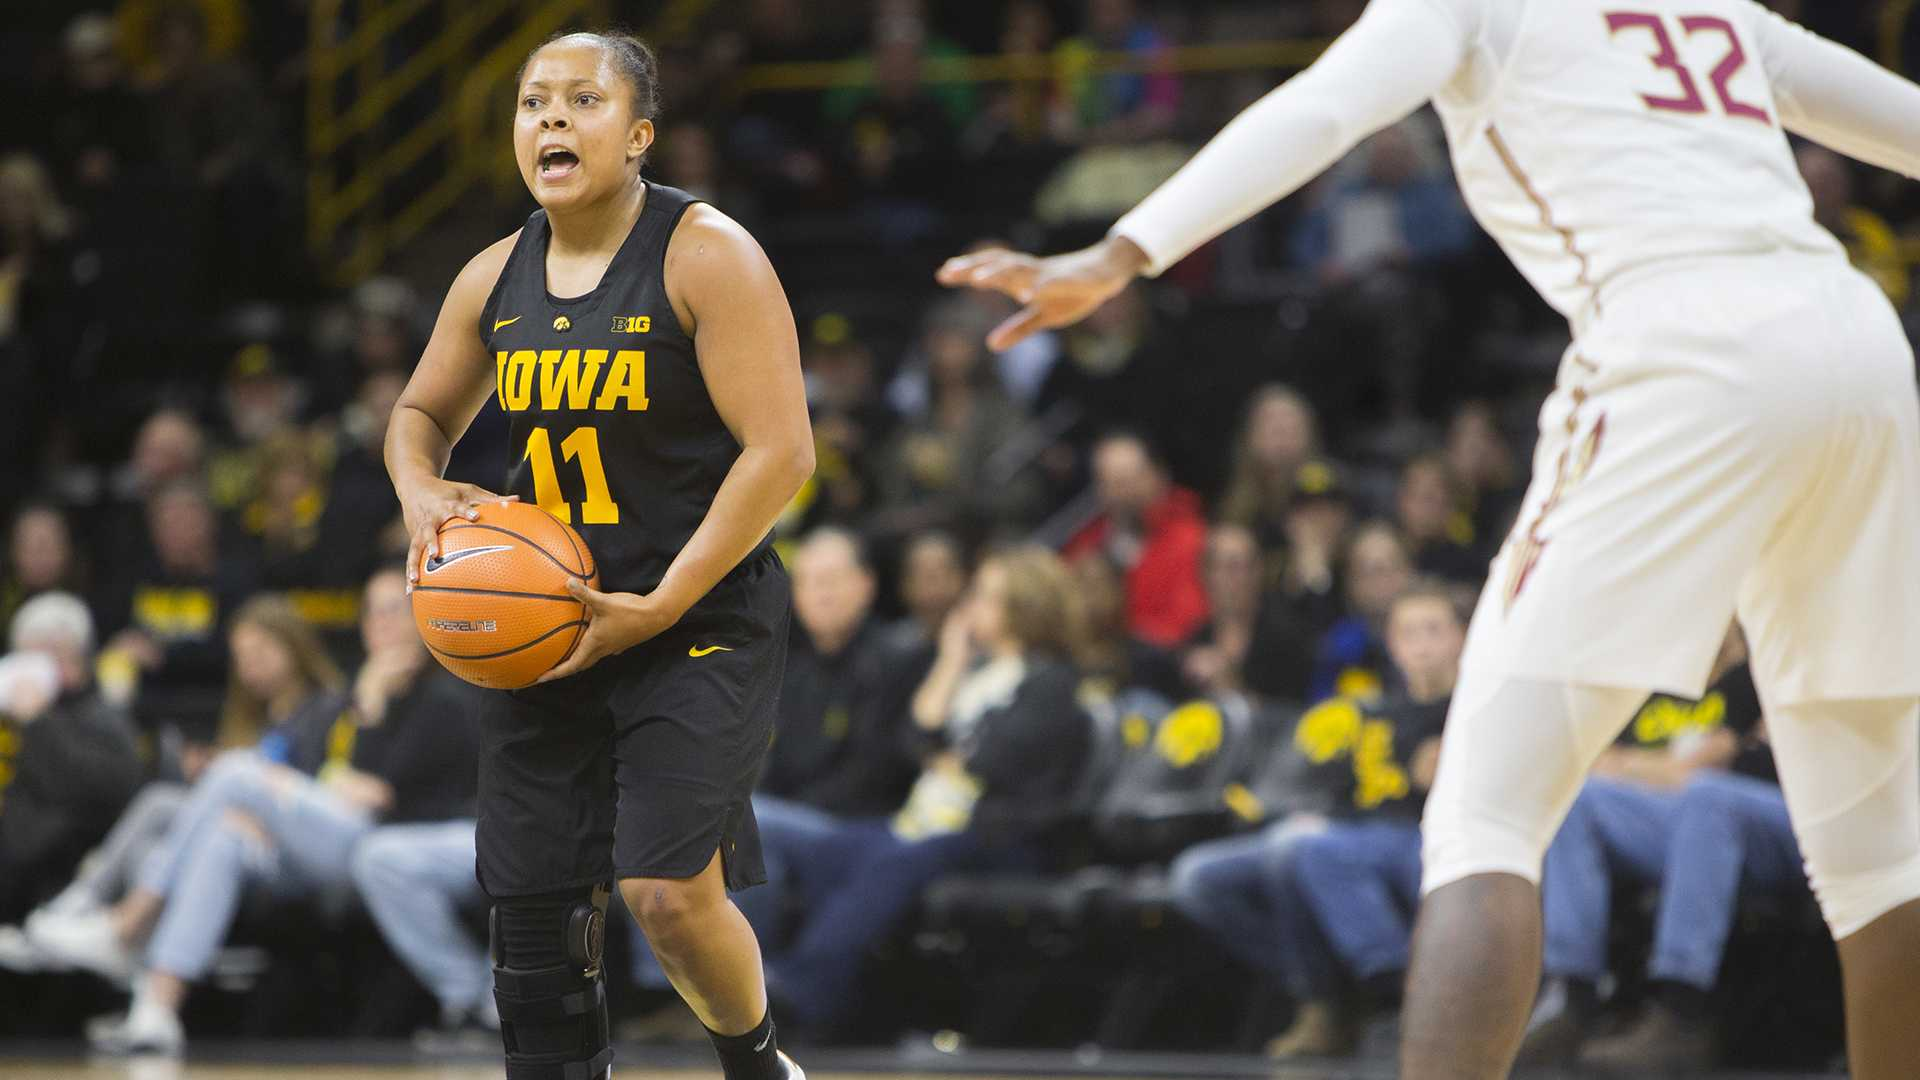 Iowa guard Tania Davis yells during the Iowa/Florida State Big Ten/ACC Challenge basketball game at Carver-Hawkeye Arena on Wednesday, Nov. 29, 2017. The Seminoles defeated the Hawkeyes, 94-93, in the Hawkeyes first loss of the season. (Lily Smith/The Daily Iowan)